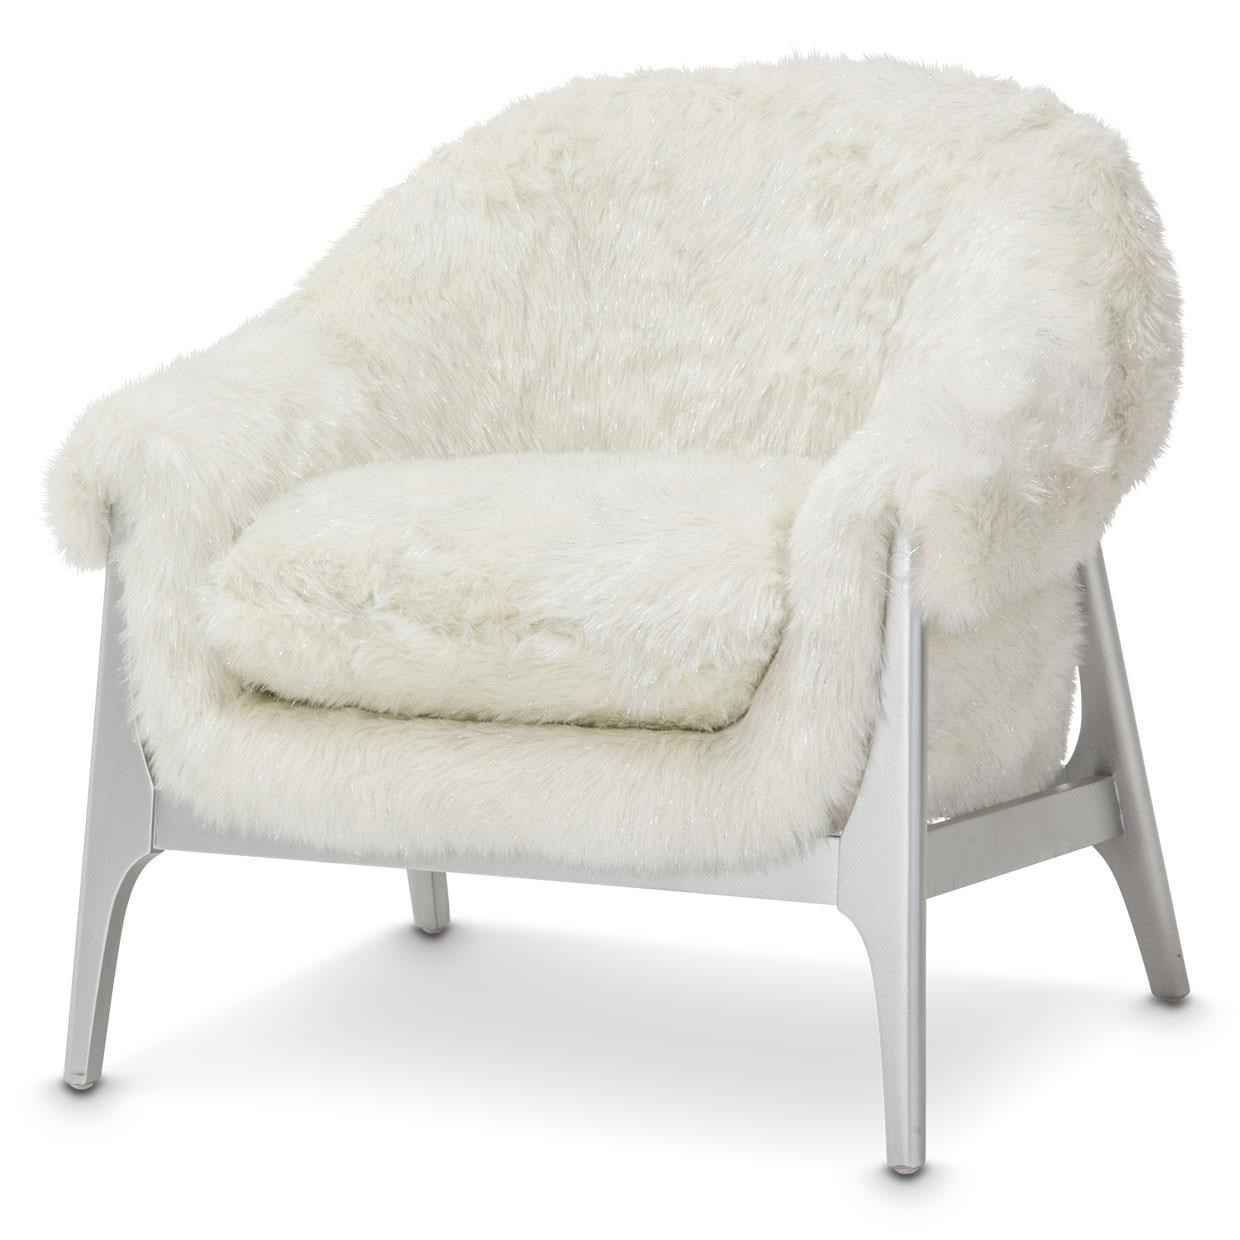 Fabulous Glimmering Heights Wood And Fur Chair Alphanode Cool Chair Designs And Ideas Alphanodeonline